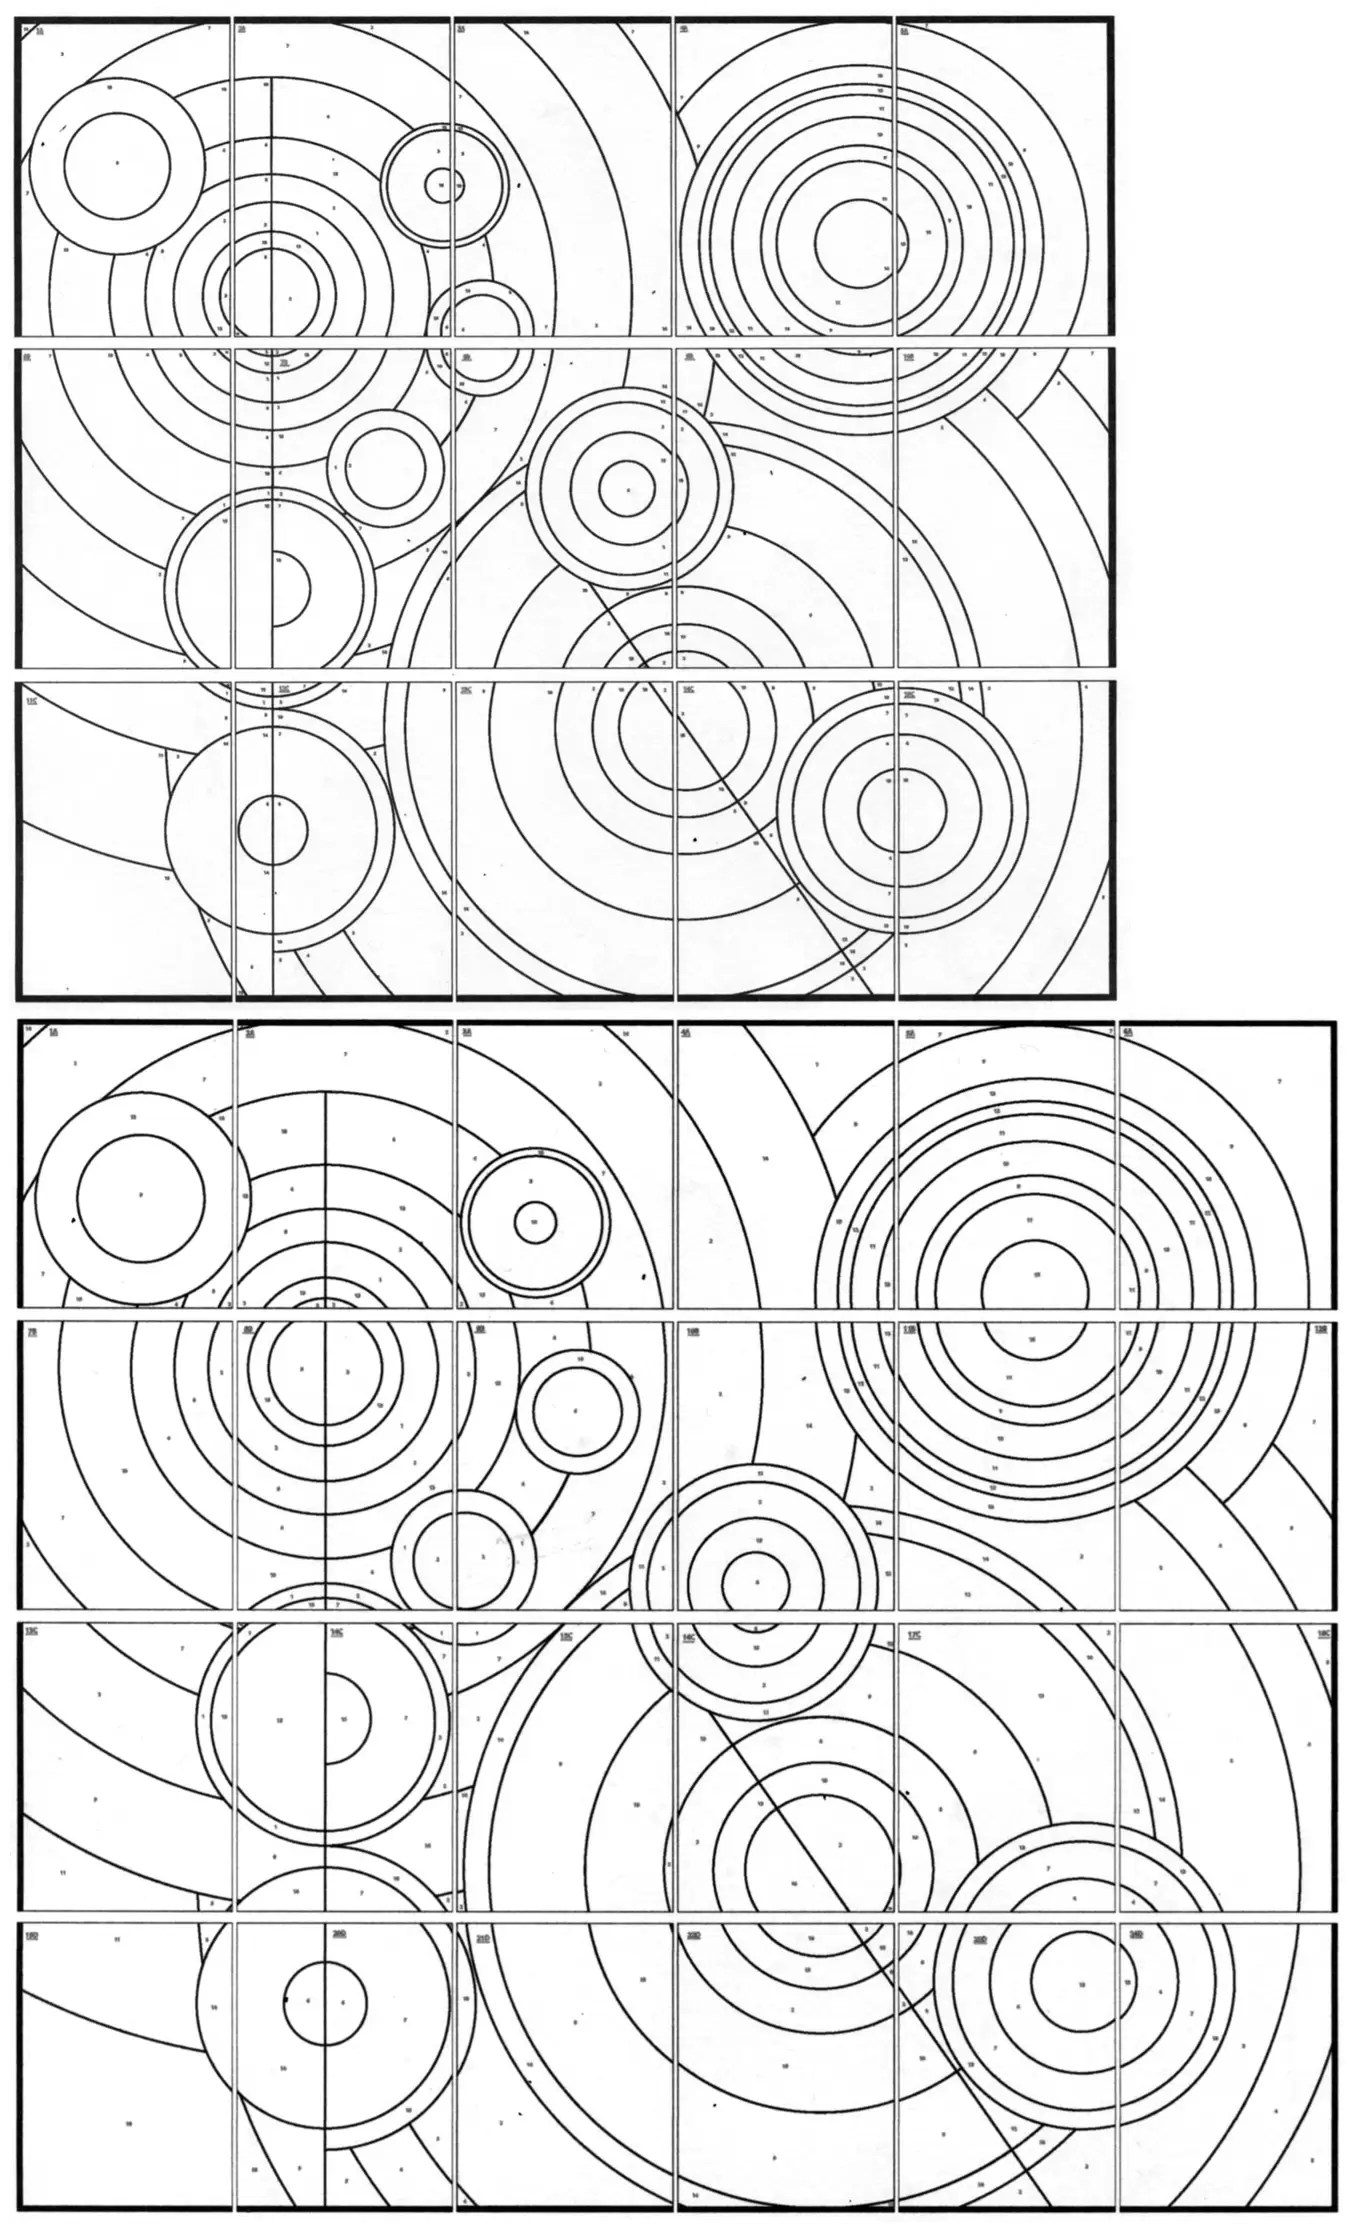 Delaunay Mural Art Projects For Kids